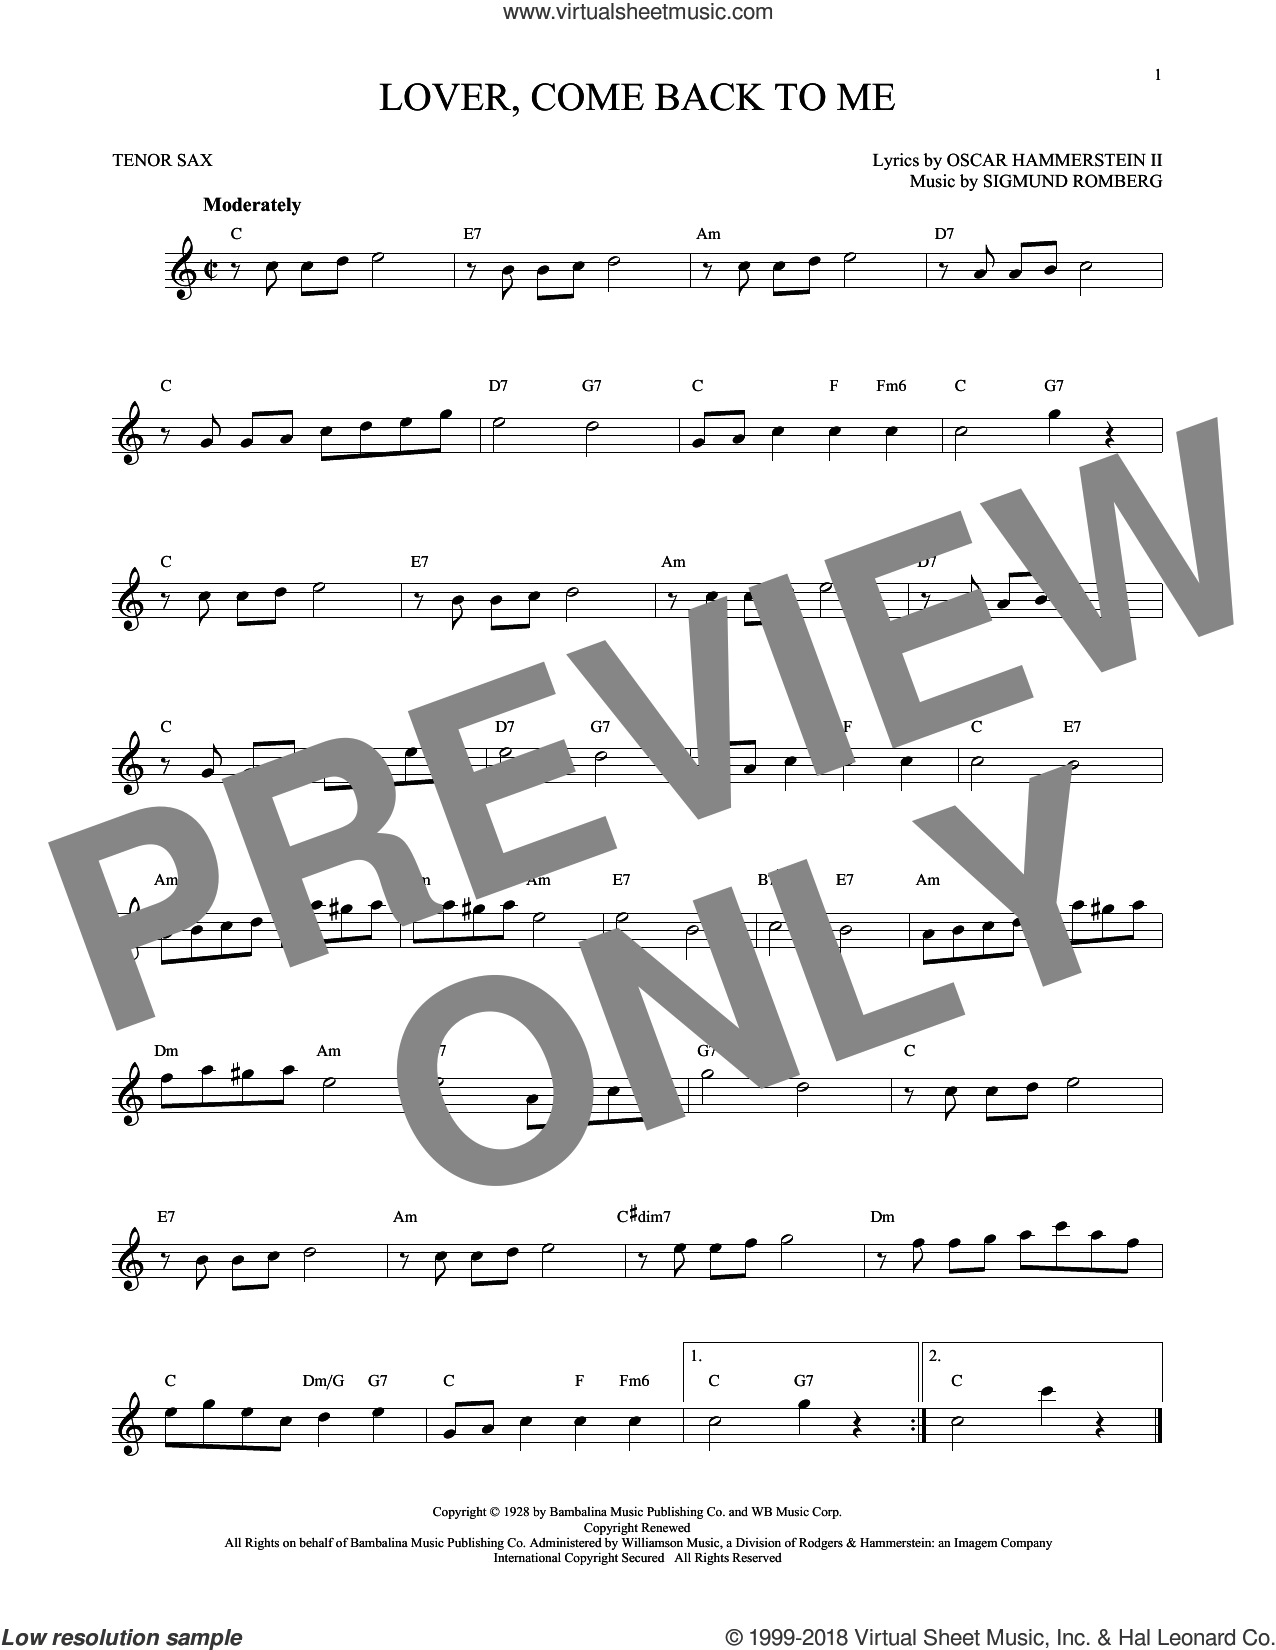 Lover, Come Back To Me sheet music for tenor saxophone solo by Oscar II Hammerstein and Sigmund Romberg, intermediate. Score Image Preview.